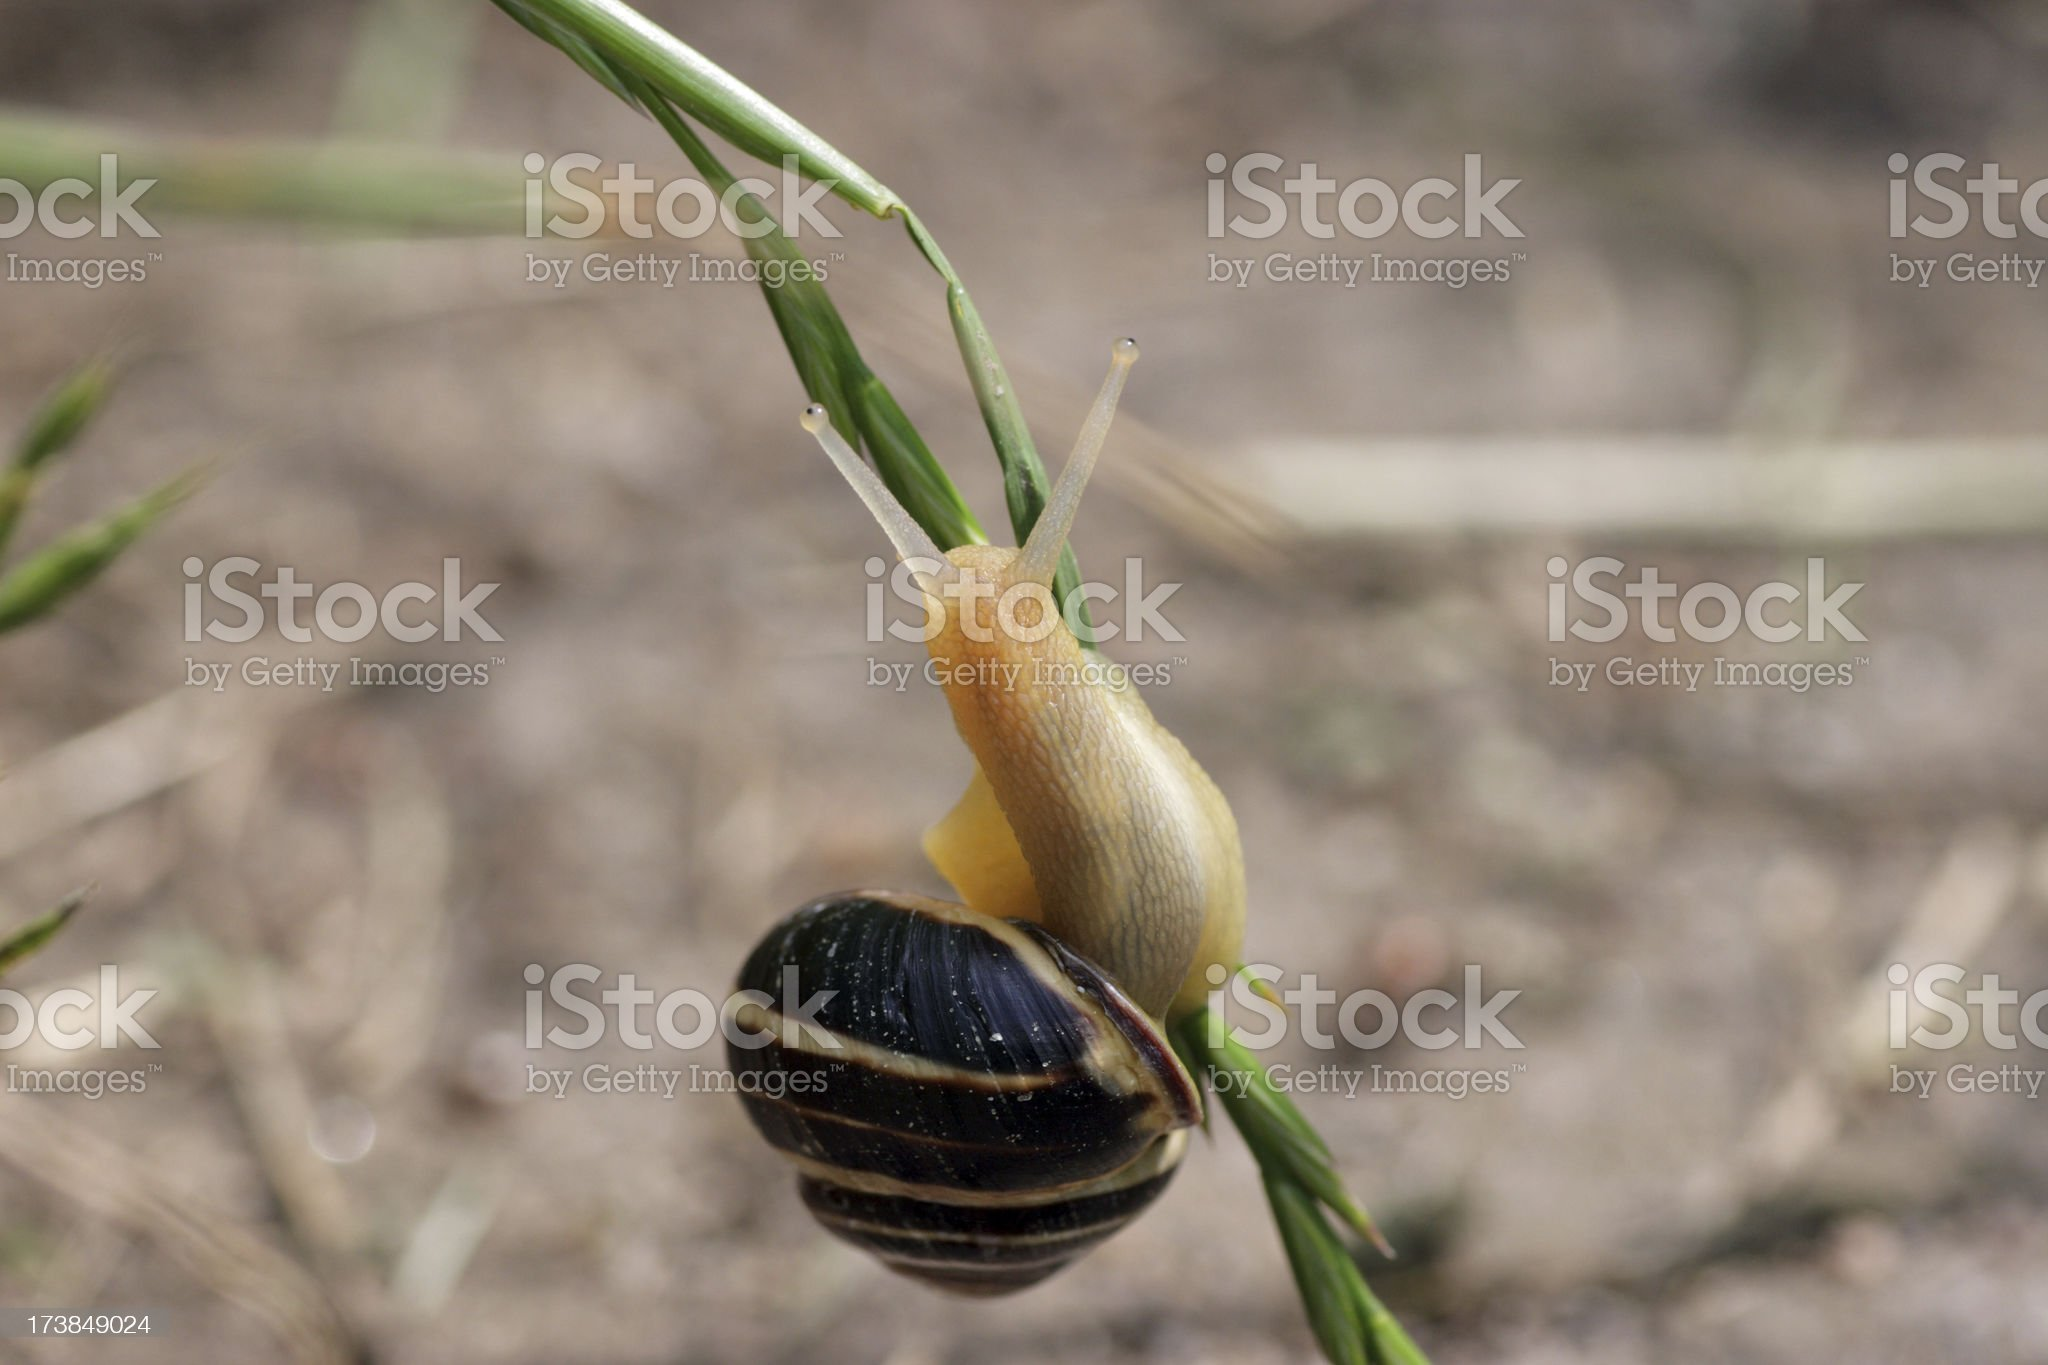 Snail on blade of grass royalty-free stock photo